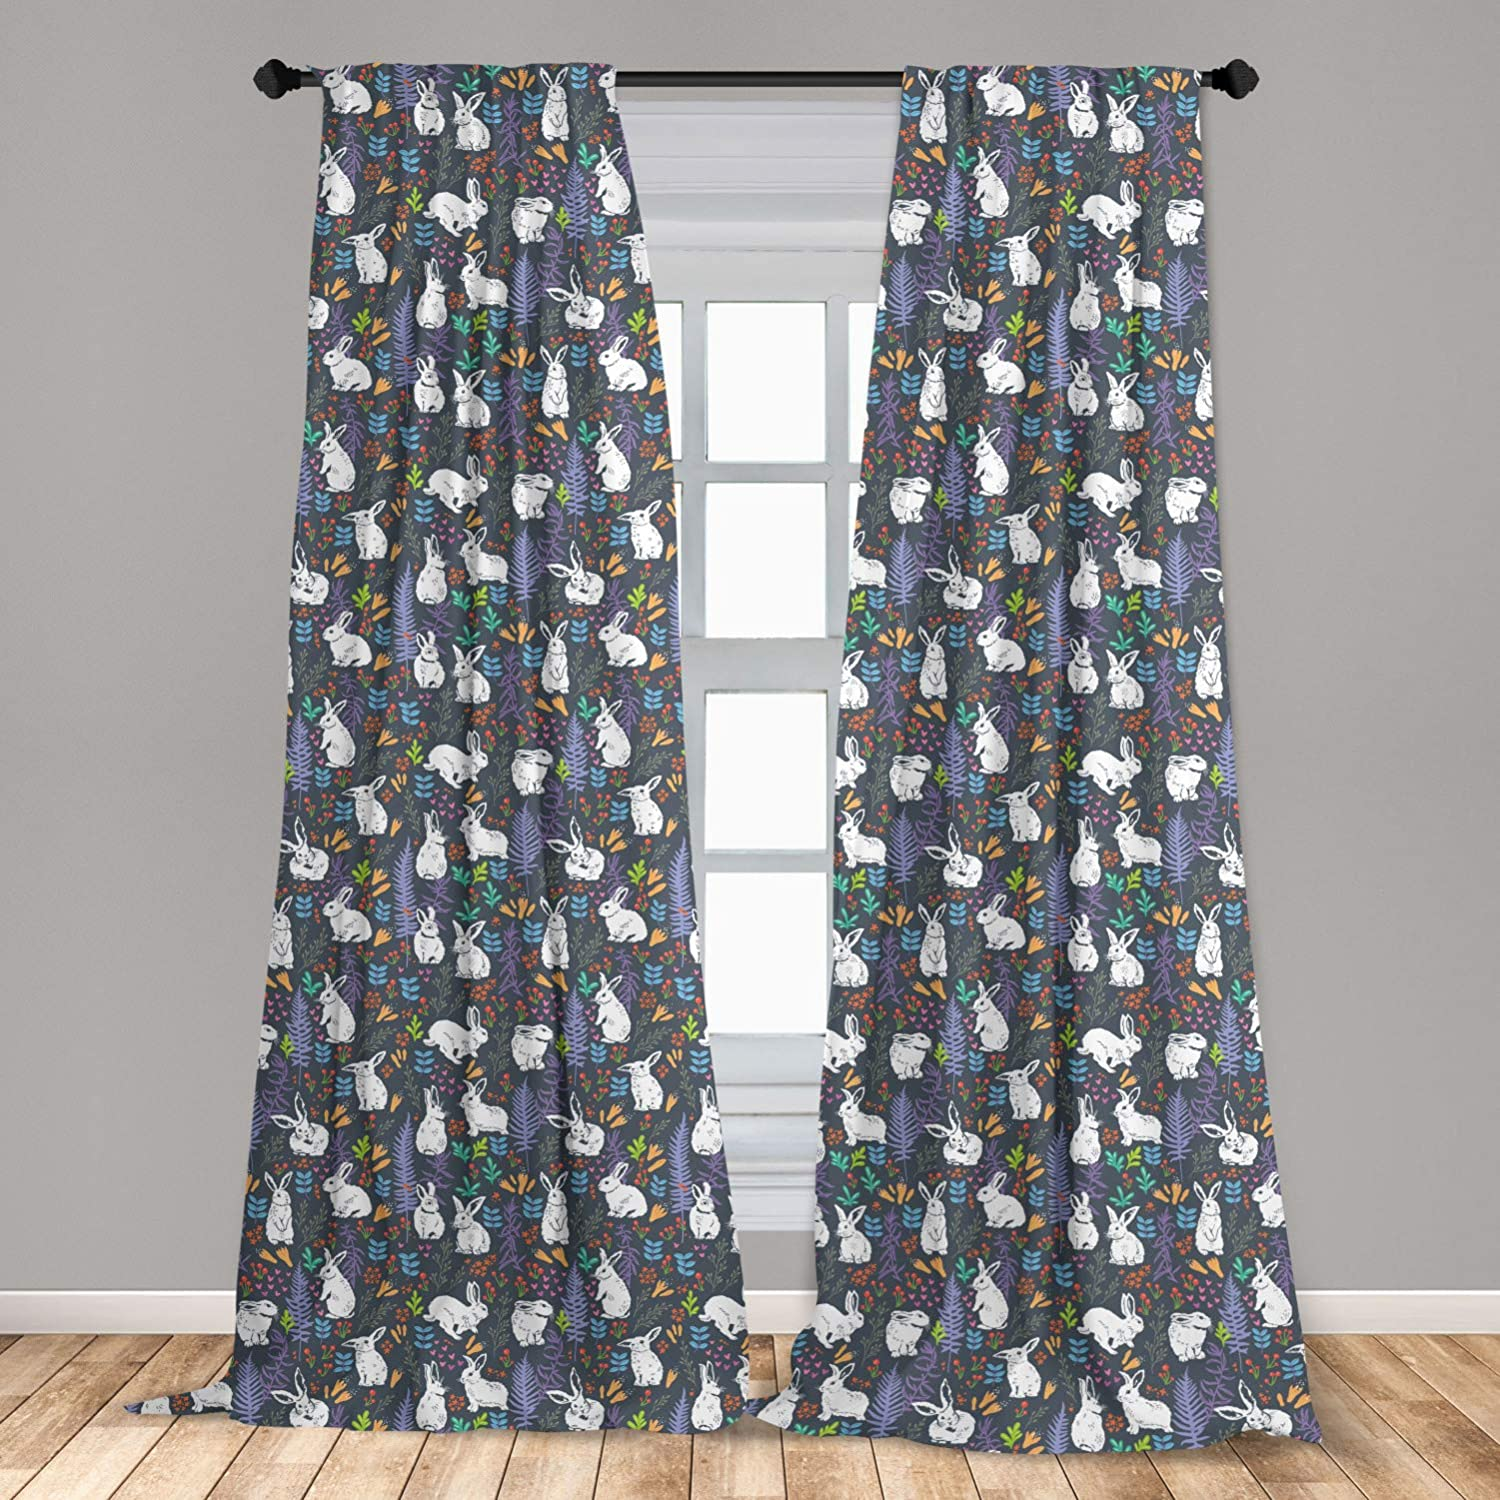 """Lunarable Rabbit 2 Panel Curtain Set, White Bunnies Among Leaves Branches Flowers and Carrots Pastel Color Illustration, Lightweight Window Treatment Living Room Bedroom Decor, 56"""" x 63"""", Blue Grey"""